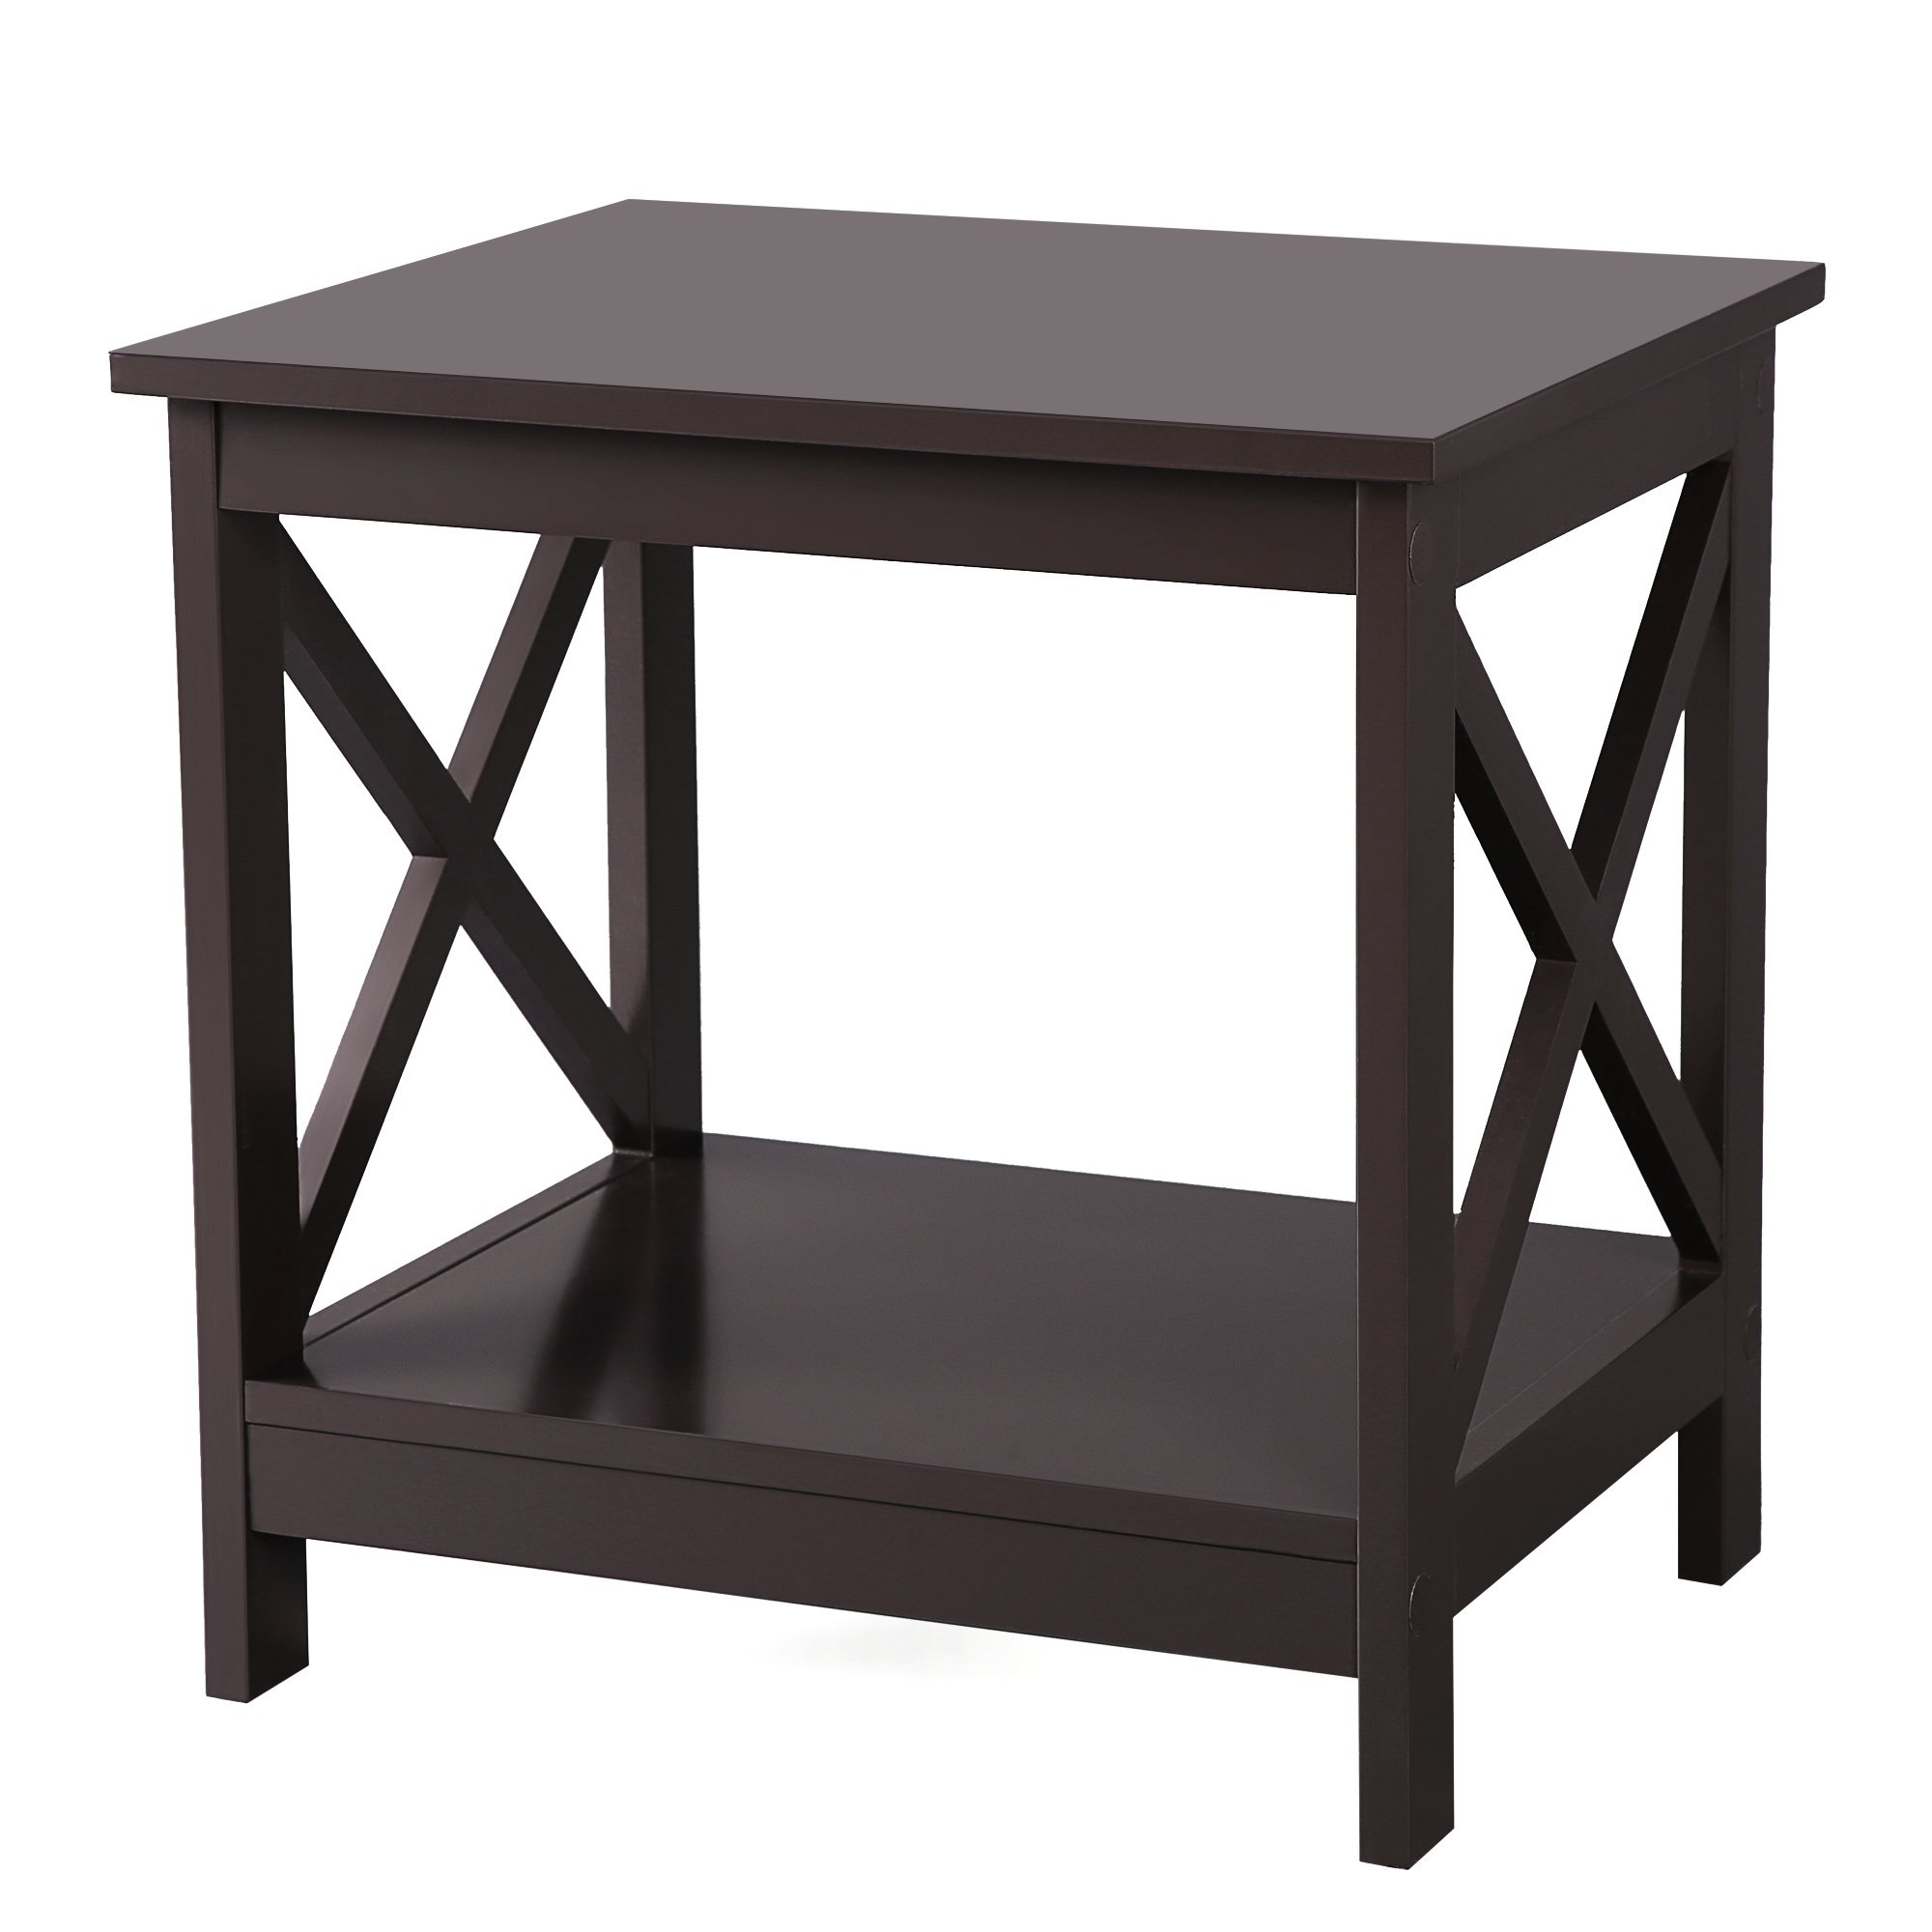 SONGMICS X-Design Sofa End Table, Wooden Side Table with 2 Display Shelves, Espresso, ULET01BR